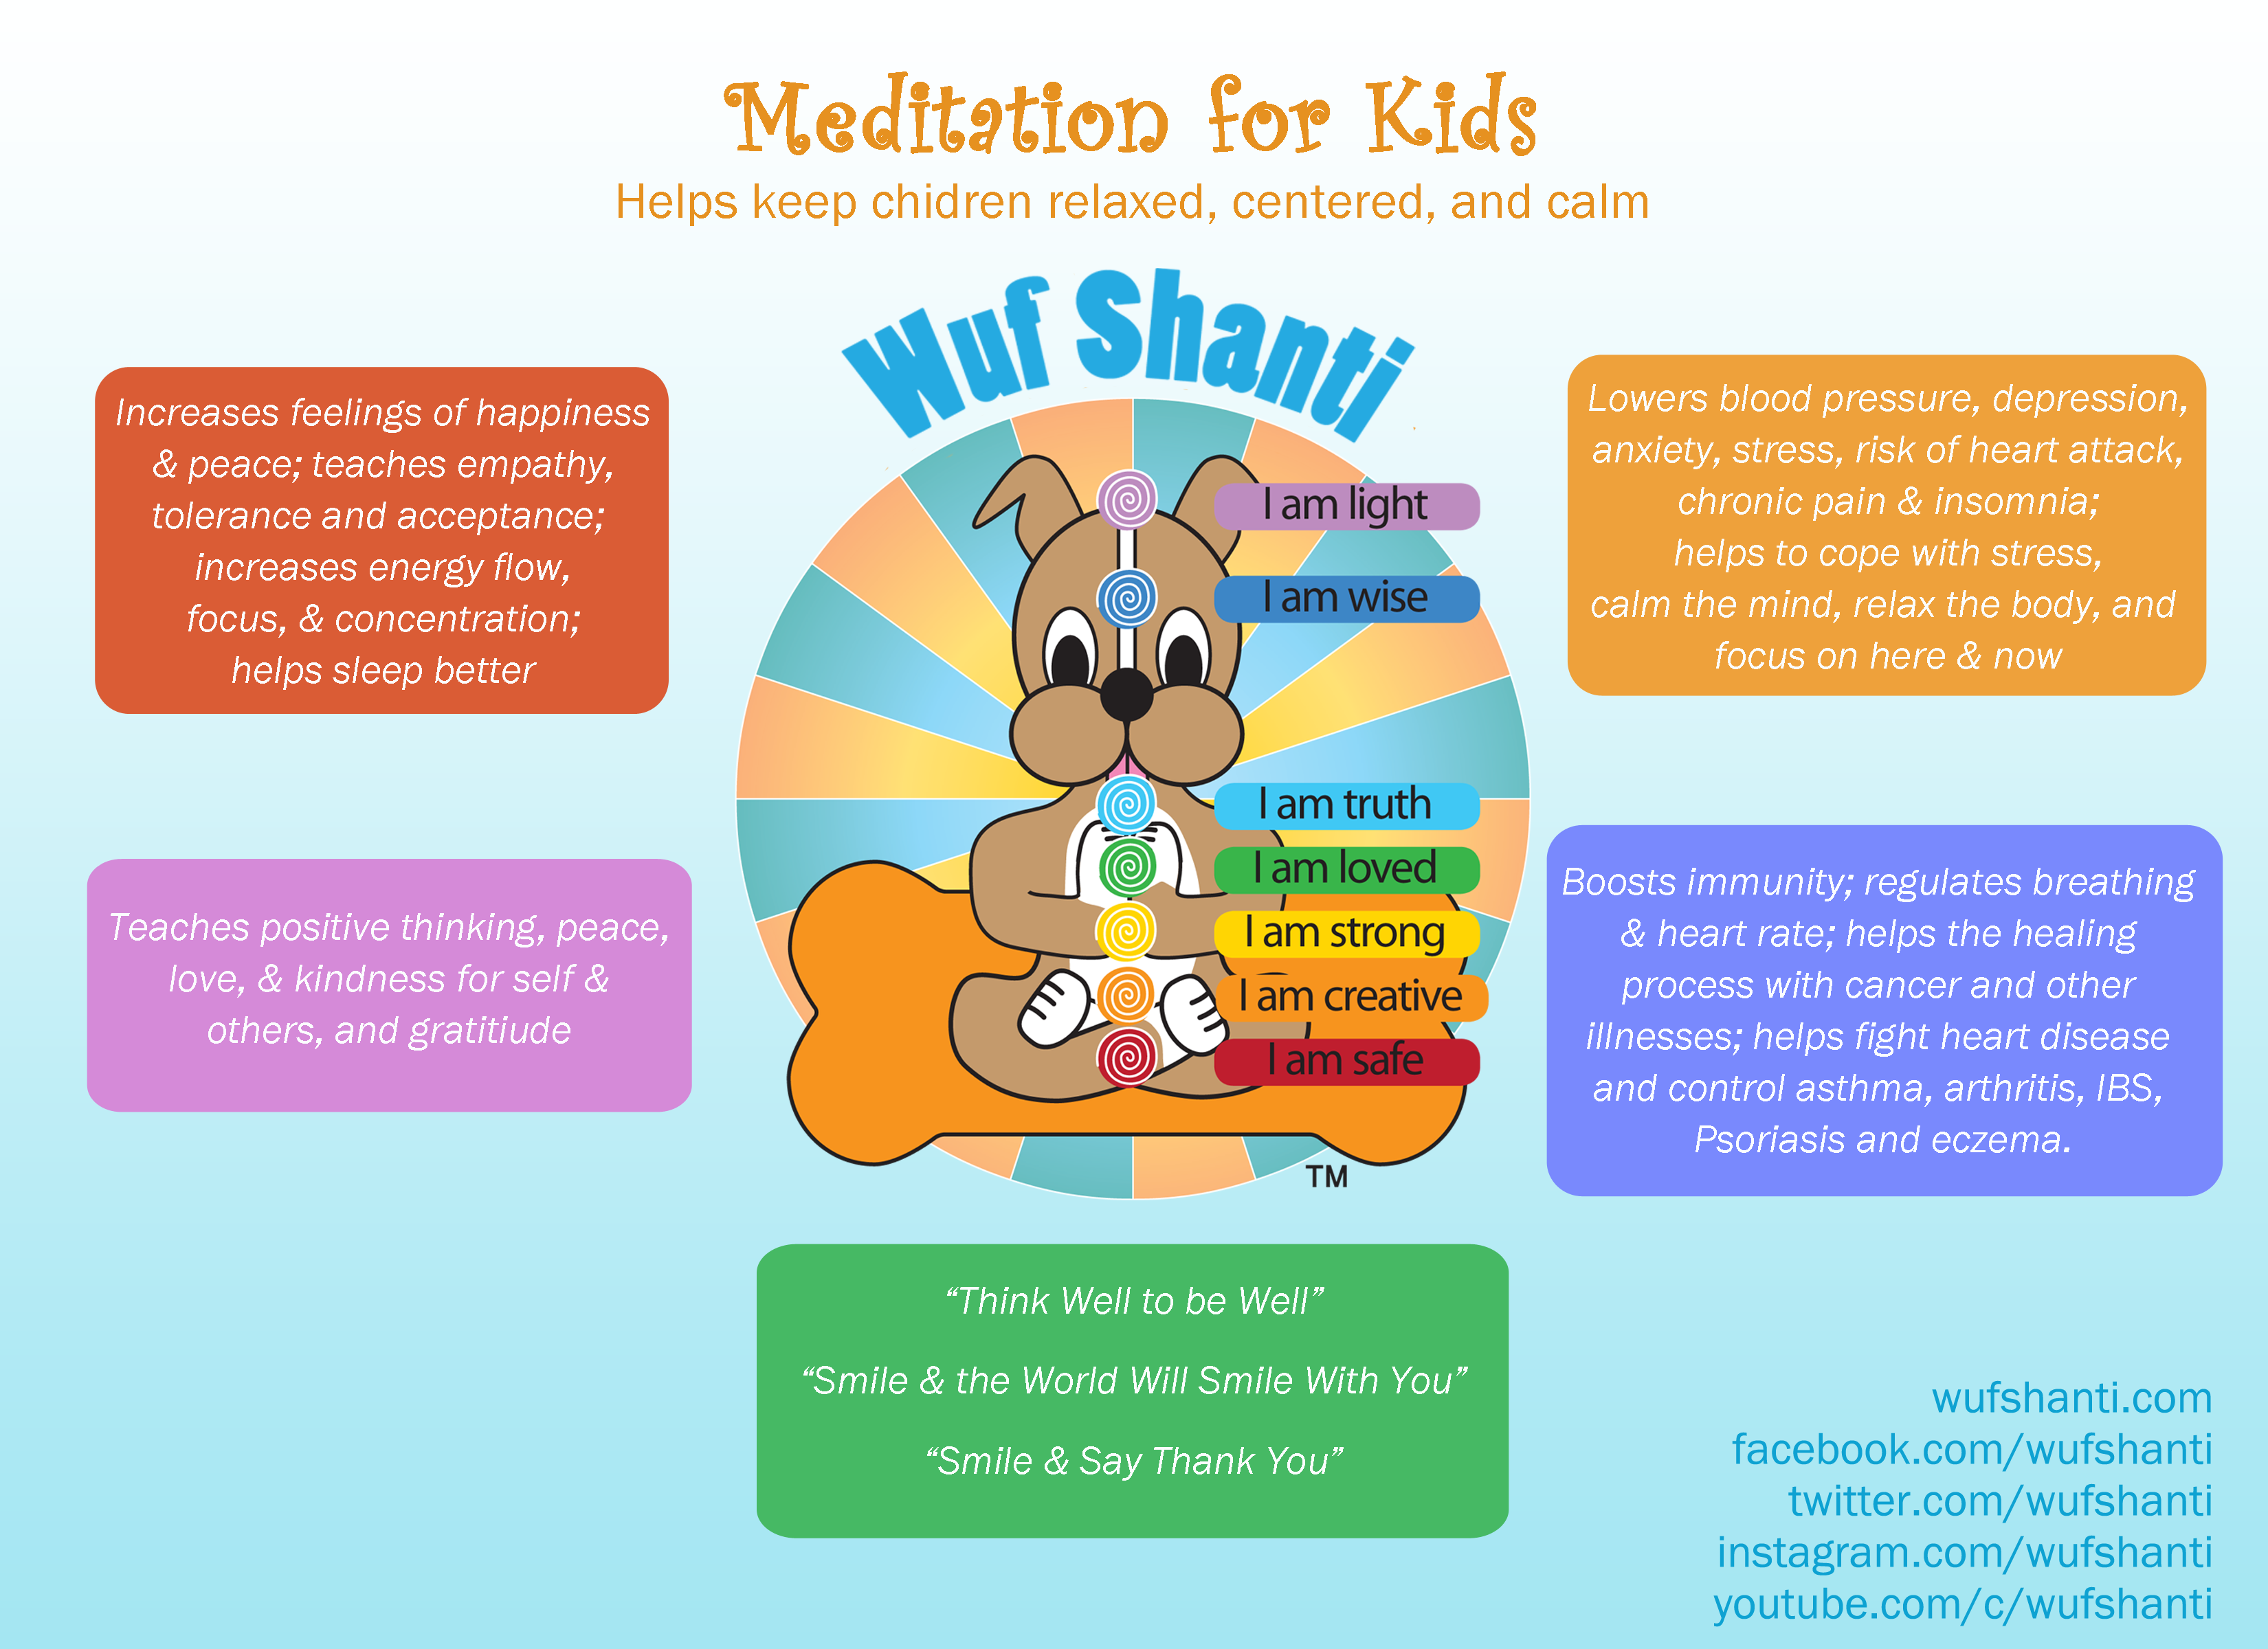 Benefits Of Various Poses Meditations And Mantras Can Also Be Found In Our Coffee Table Style Book For Kids Living Light With Wuf Shanti A